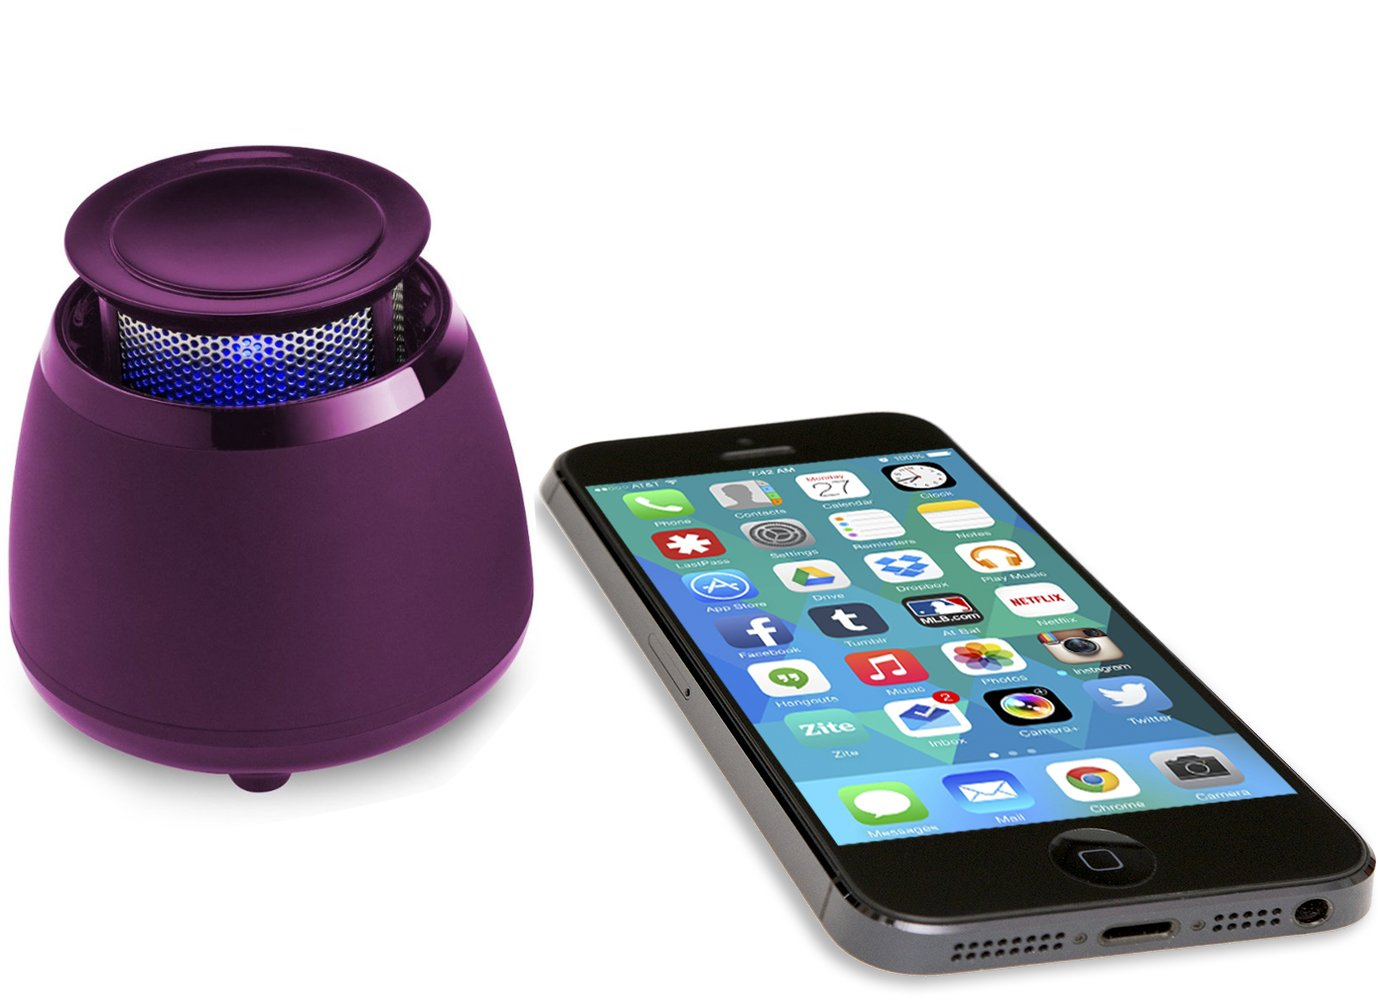 BLKBOX Wireless Bluetooth Speaker POP360 Hands Free Bluetooth Speaker - for iPhones, iPads, Androids, Samsung and all Phones, Tablets, Computers (Party Purple) by BLKBOX (Image #1)